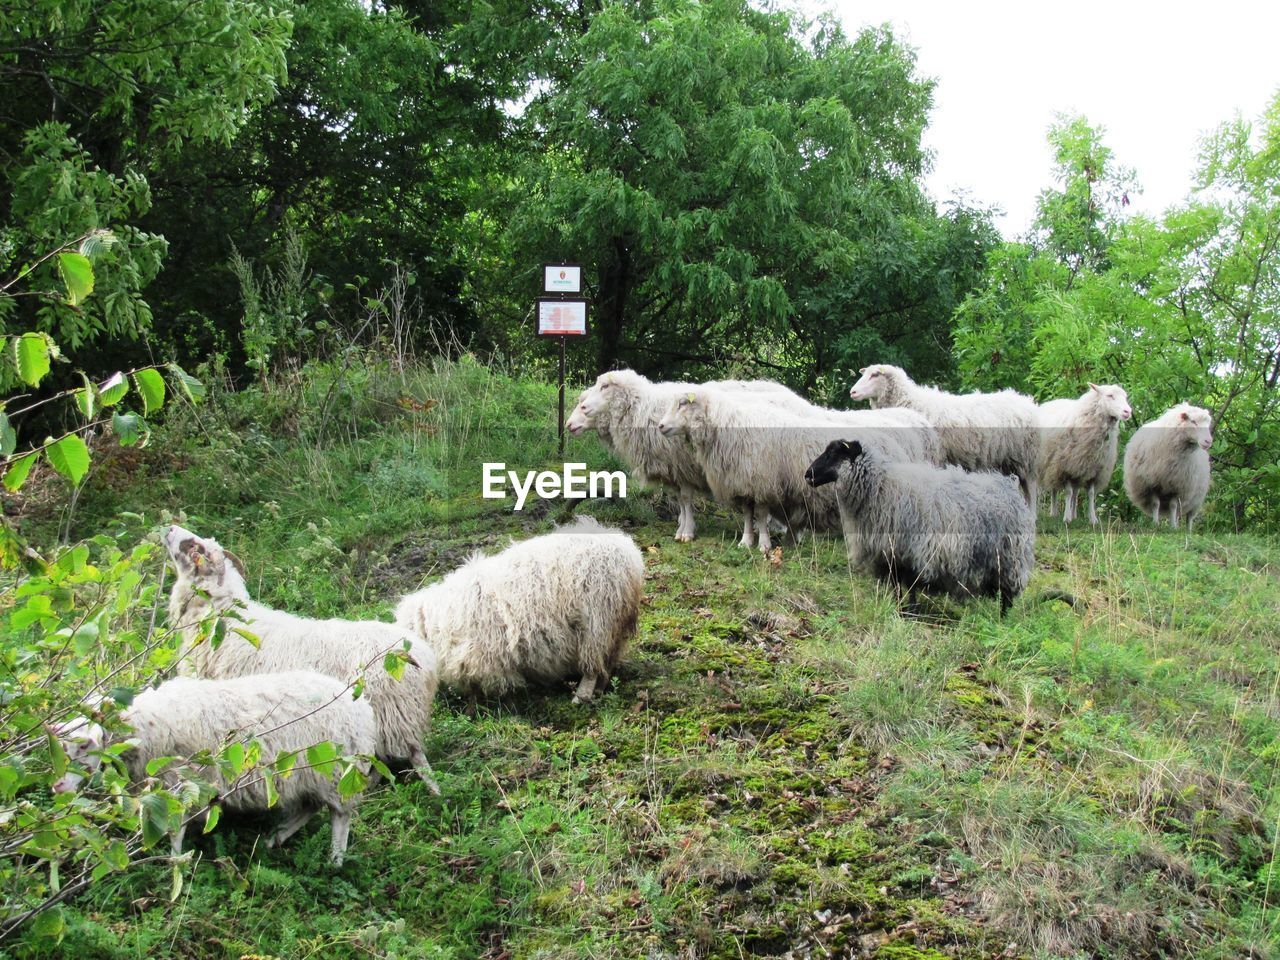 mammal, livestock, group of animals, animal themes, domestic animals, domestic, plant, animal, pets, green color, grass, sheep, tree, nature, land, vertebrate, day, field, agriculture, no people, herbivorous, outdoors, animal family